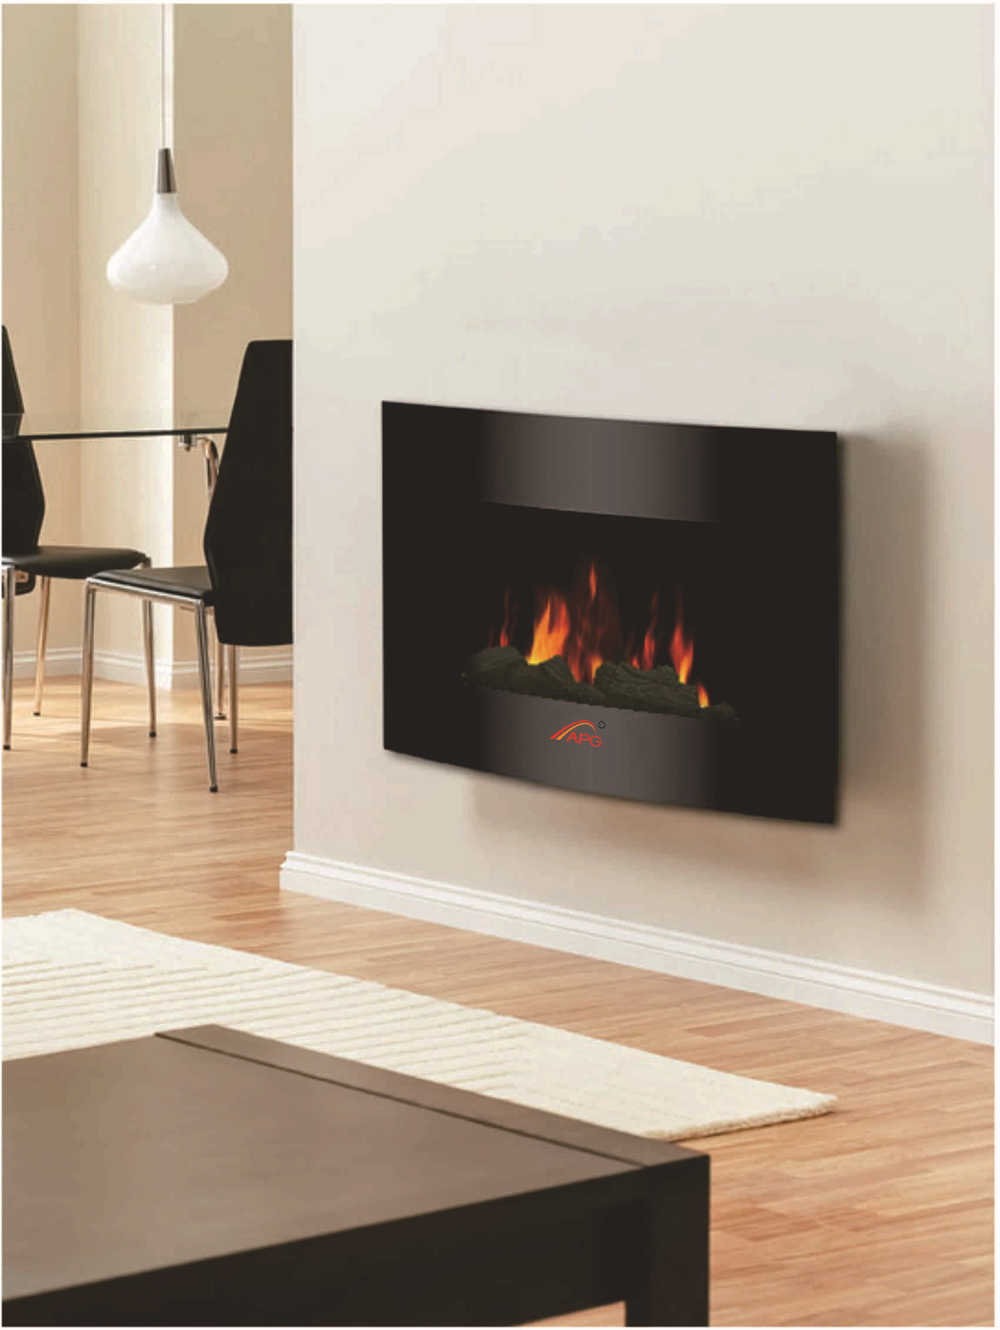 mur mont u00e9 led  u00e9lectrique chemin u00e9e  d u00e9cor flamme chemin u00e9e decor flame fireplace how to put together decor flame fireplace entertainment center